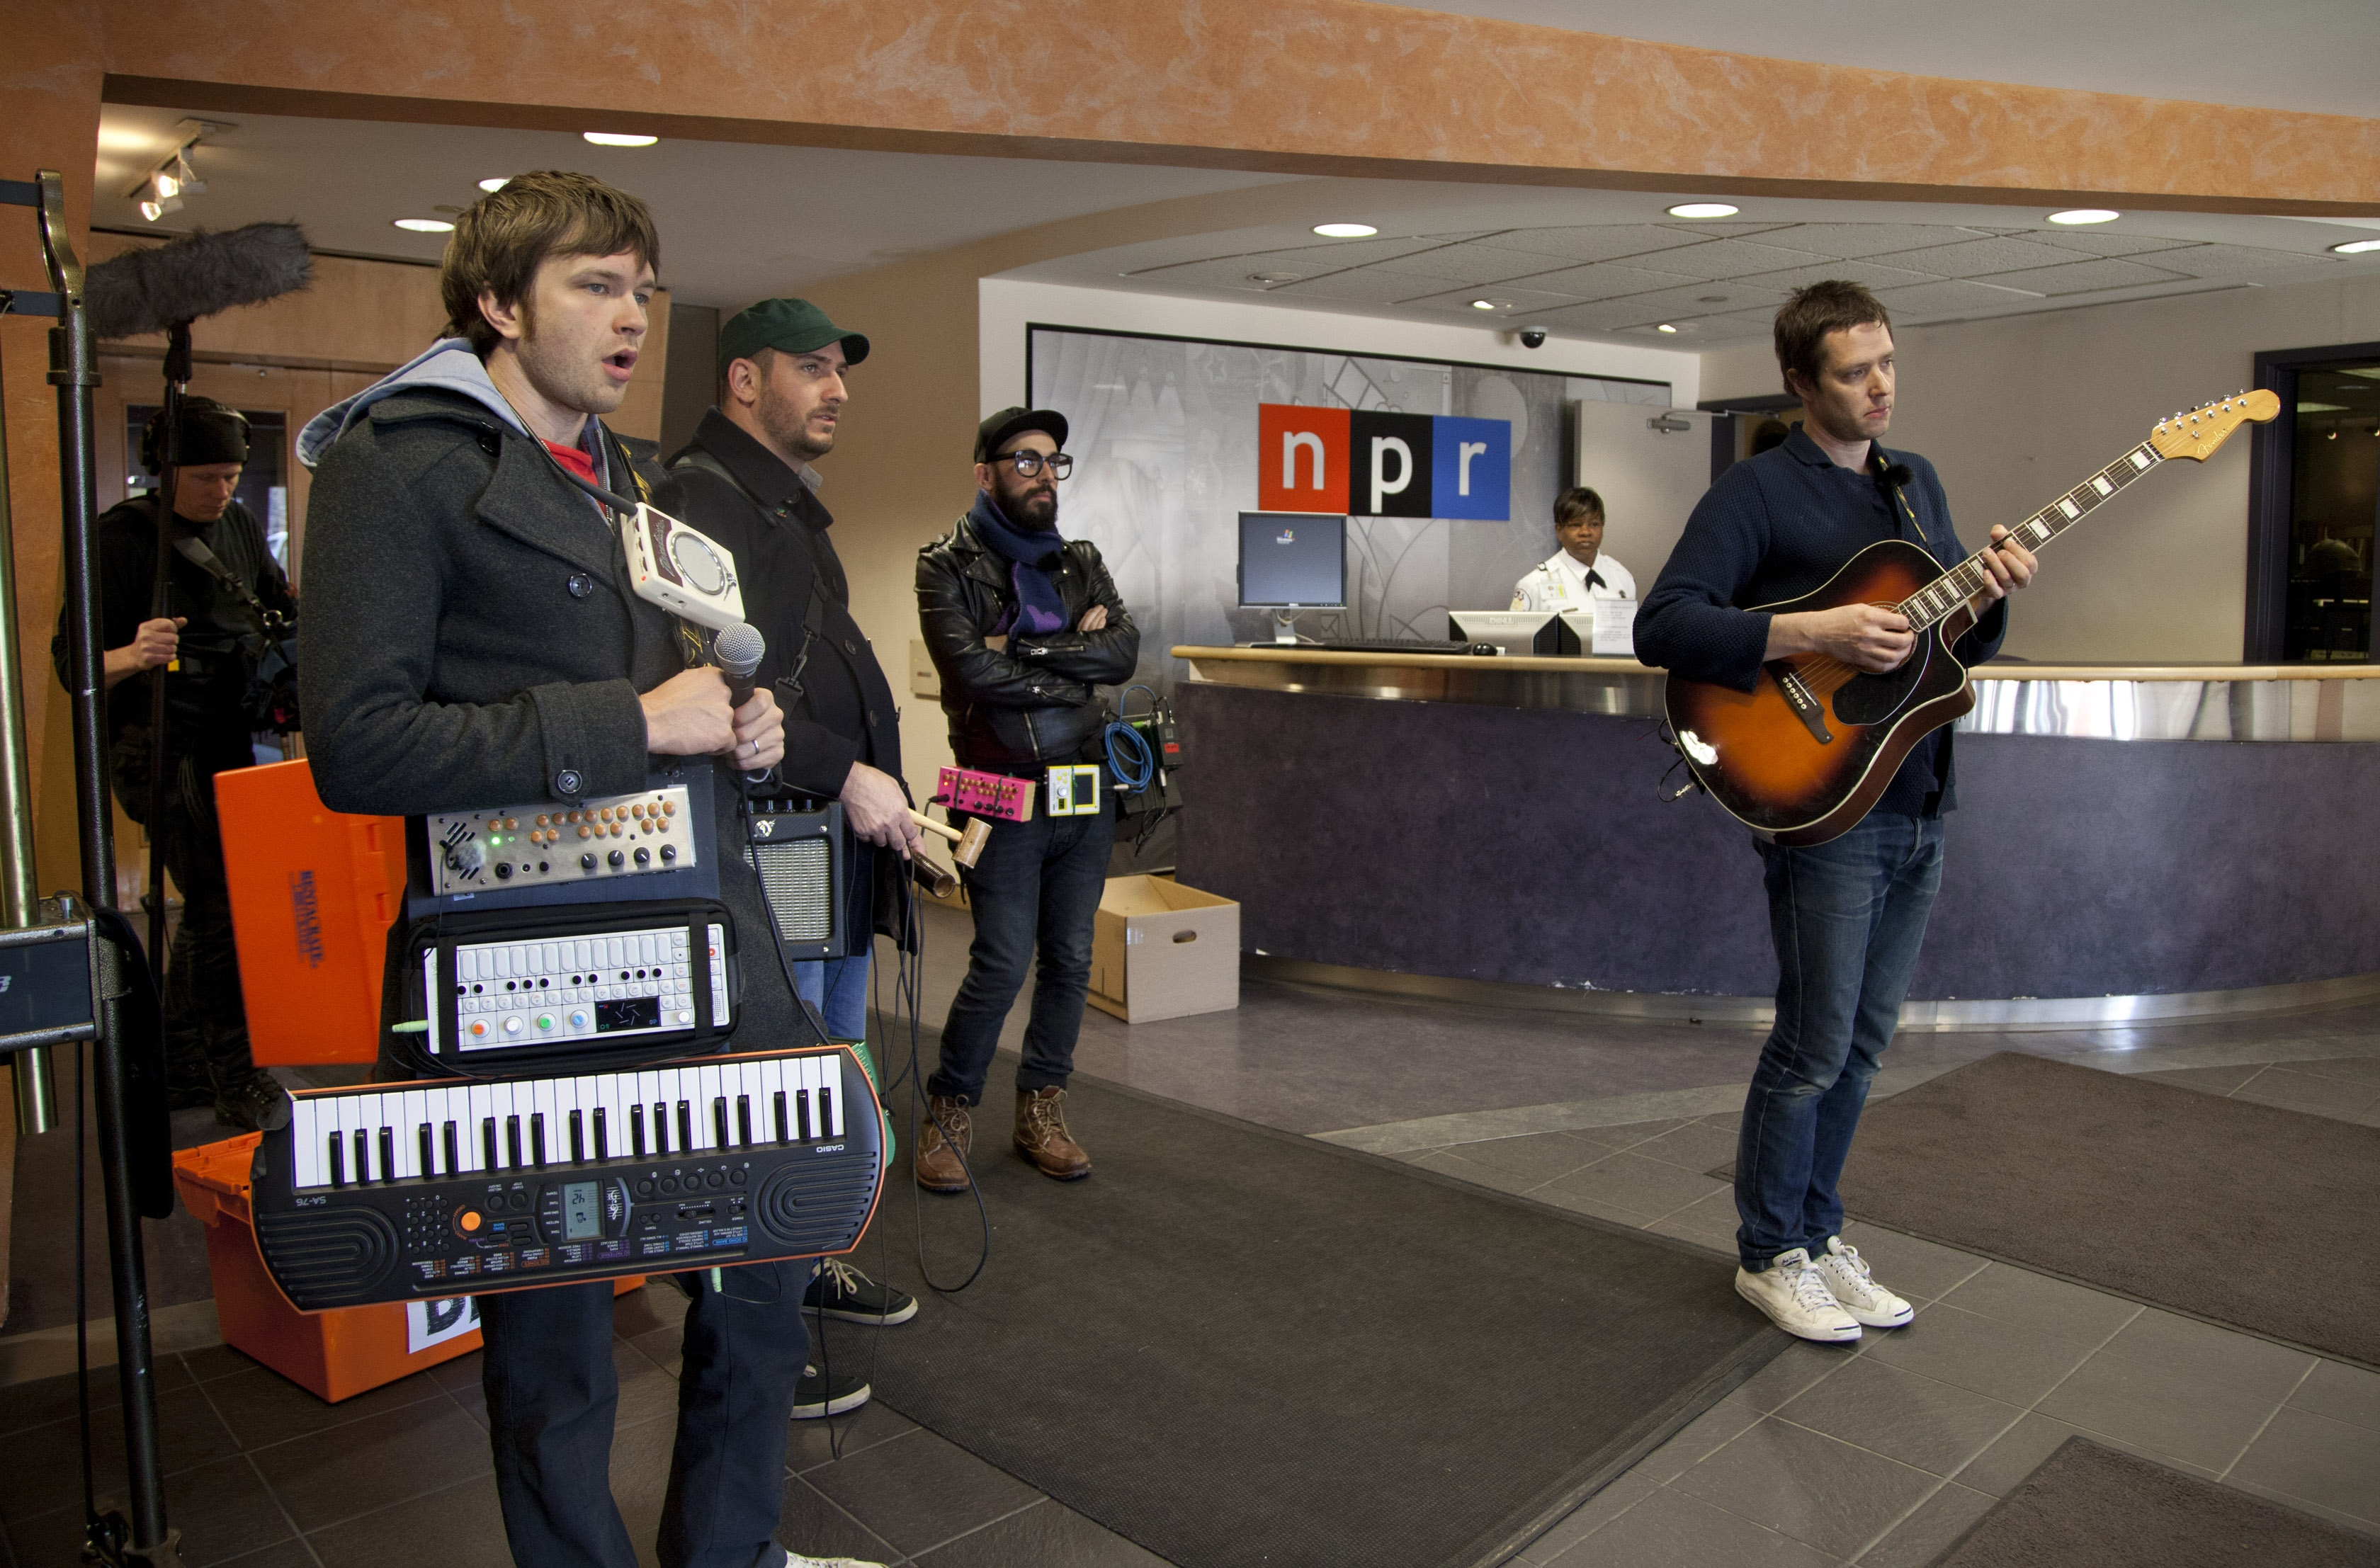 Bandmates from the power-pop band OK Go hang out between takes during a scene for NPR Music's Tiny Desk Concert inside NPR's old headquarters lobby. Andy Ross (left), Dan Konopka, Tim Nordwind and Damian Kulash